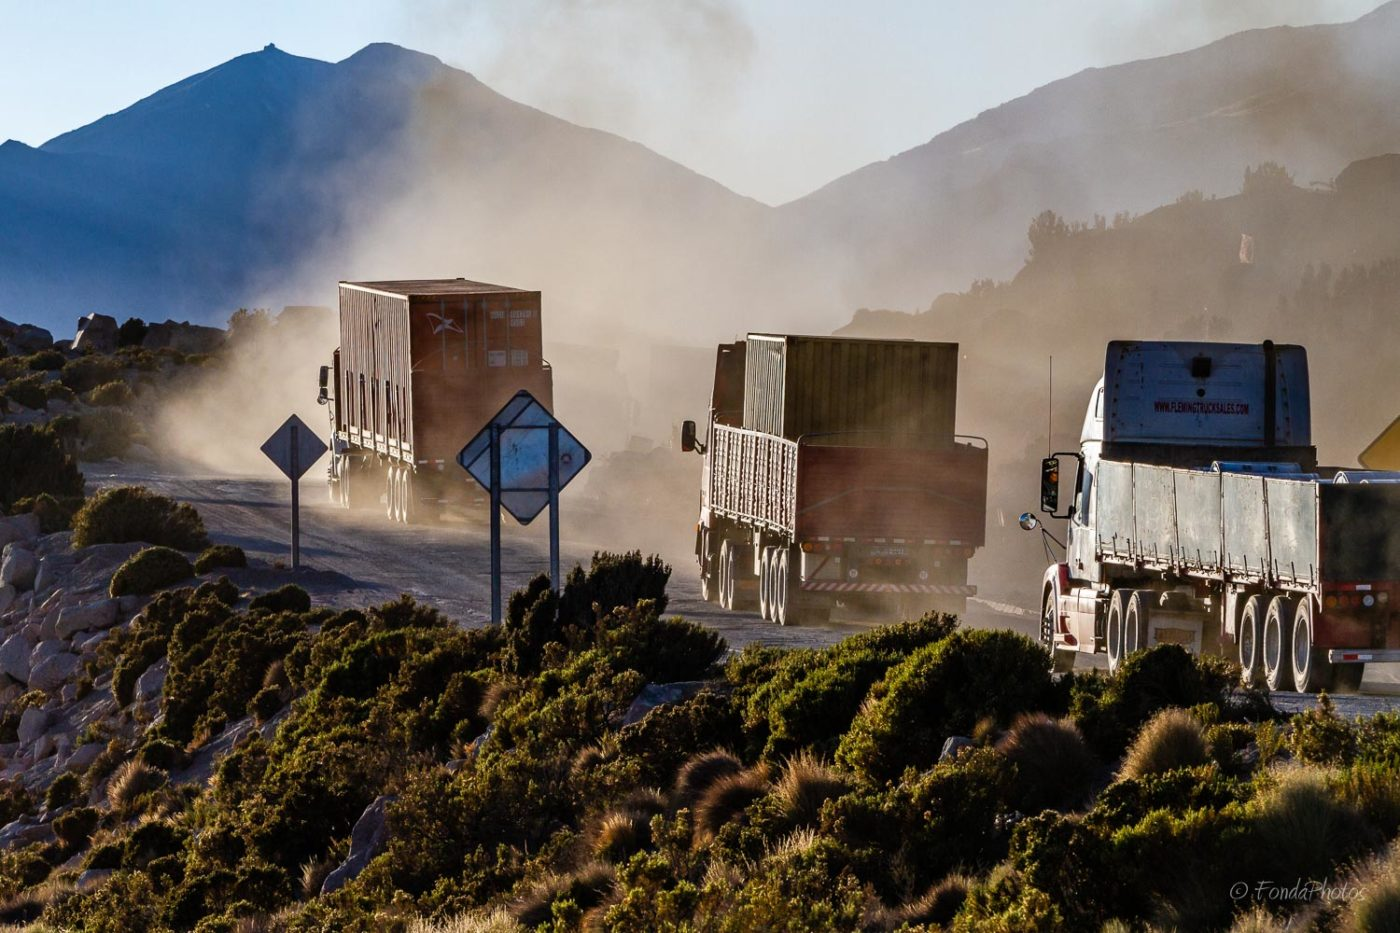 Trucks on Route 11 towards Bolivia